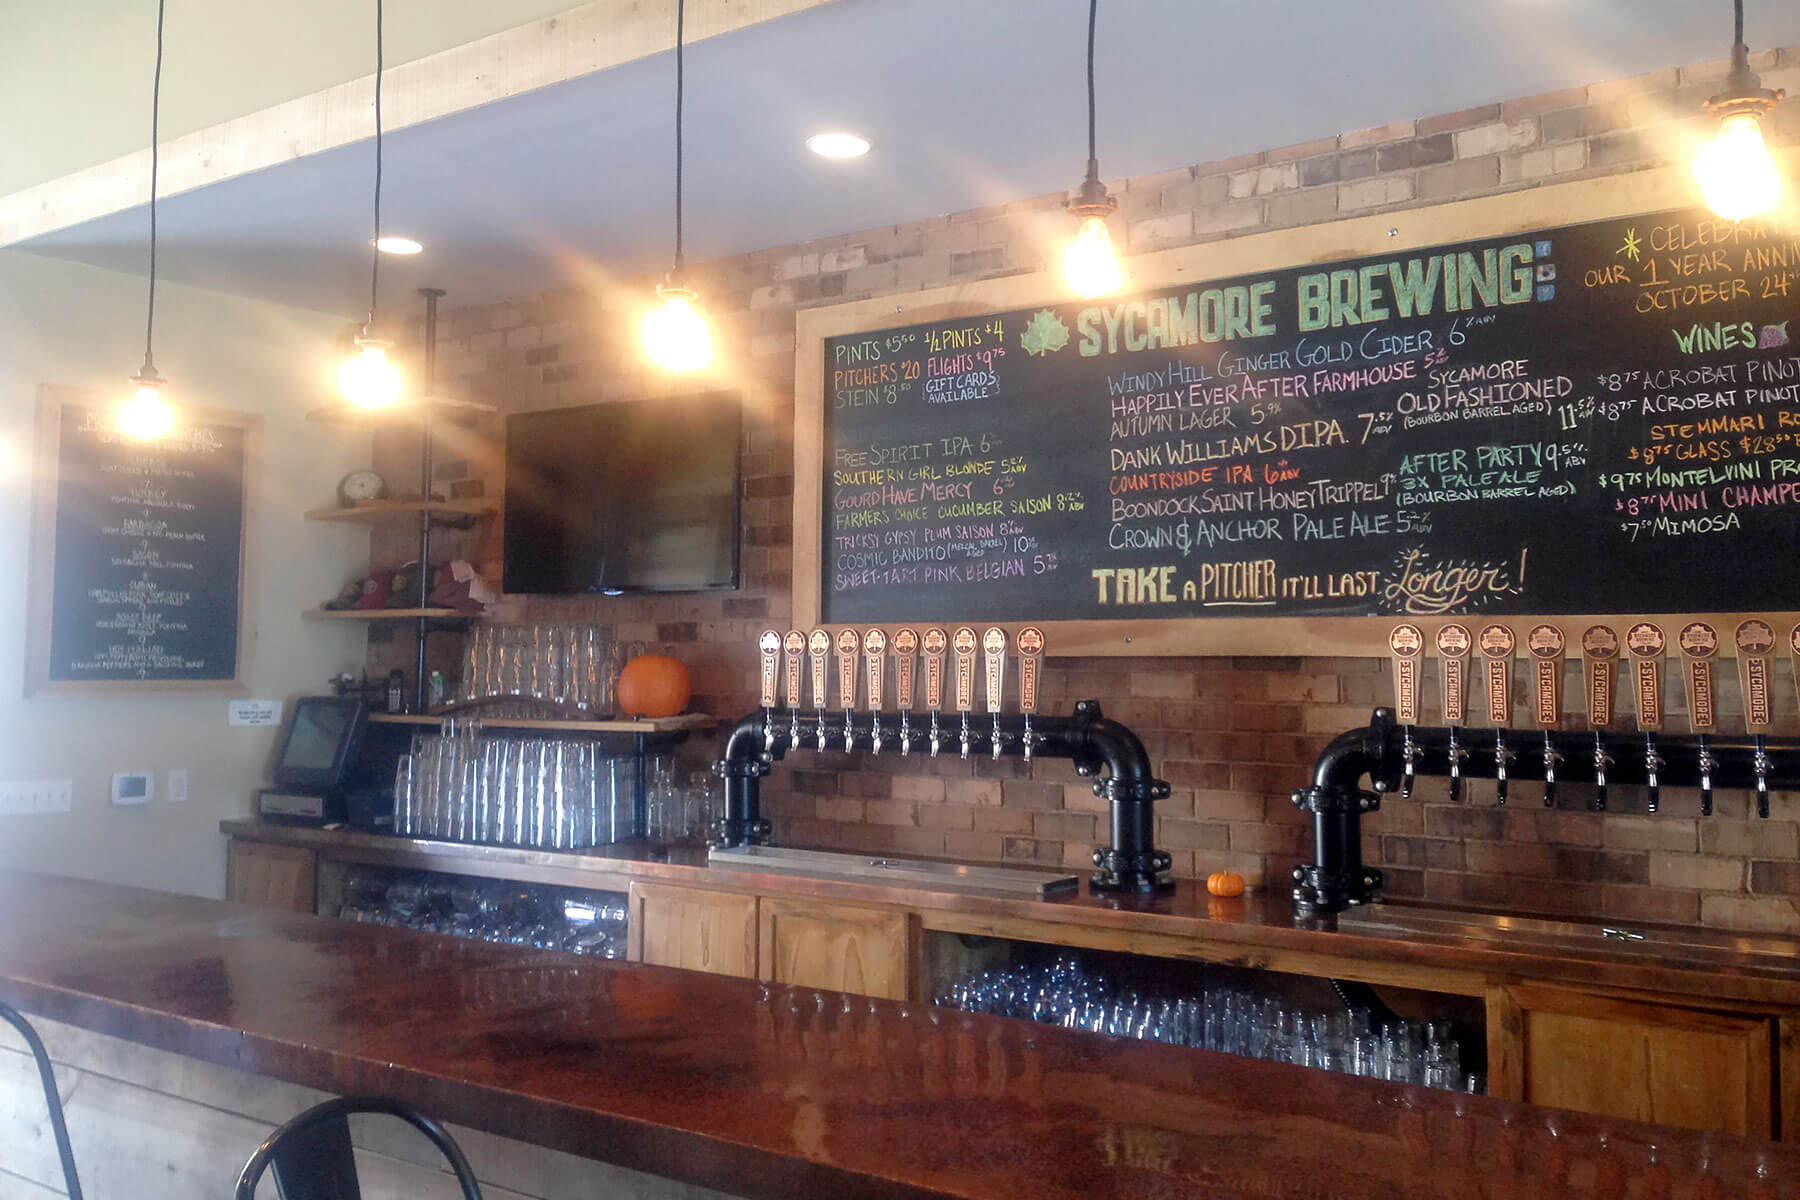 Inside the Sycamore Brewing taproom in Charlotte, North Carolina